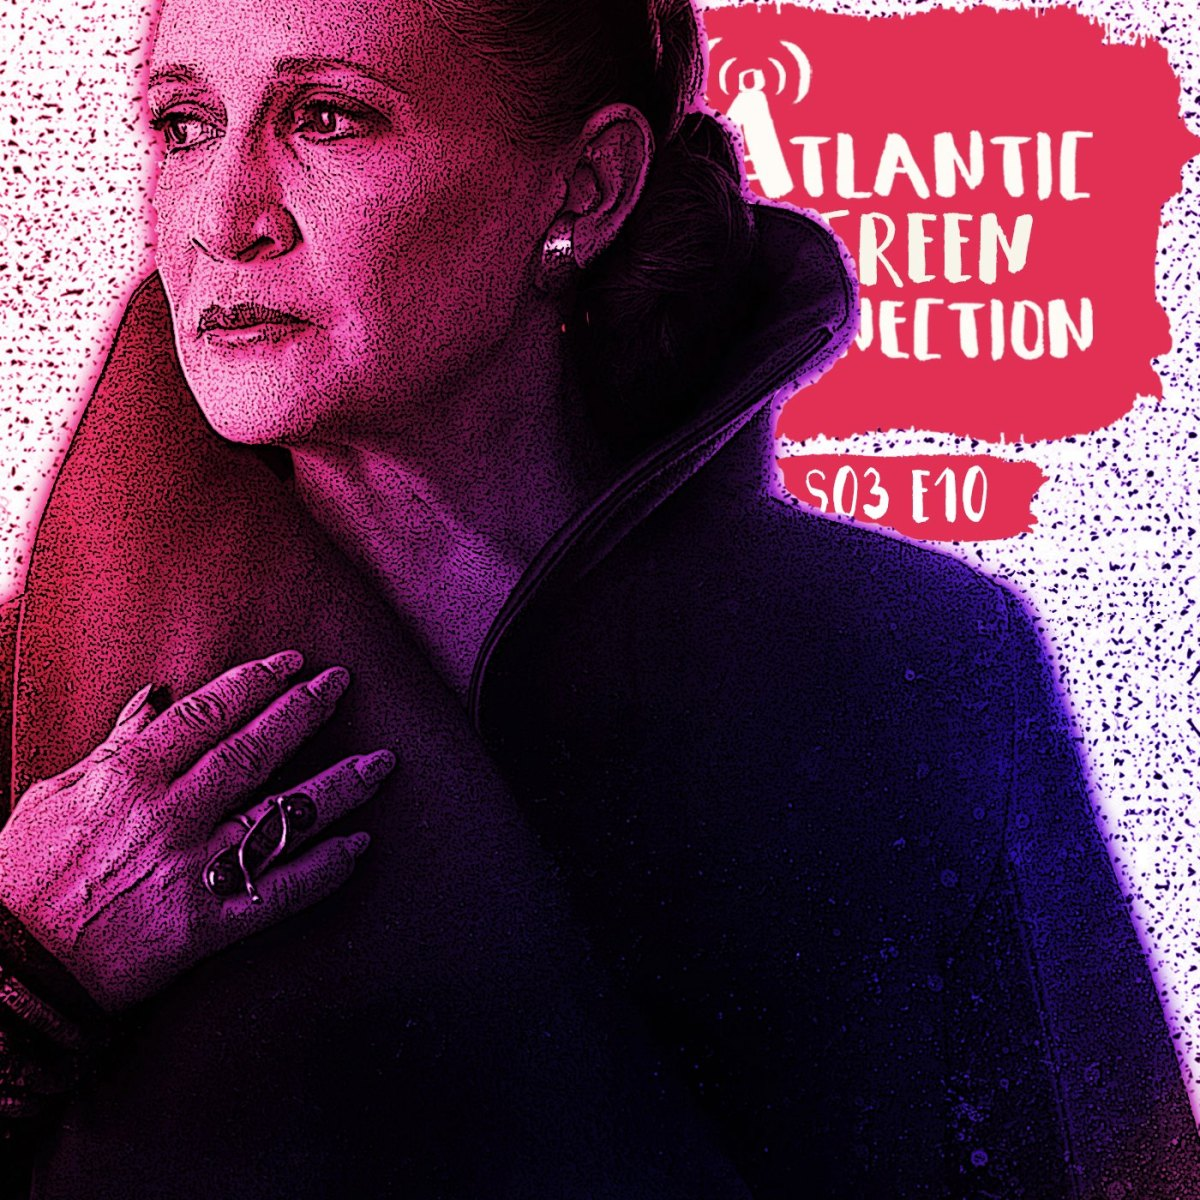 PODCAST: STAR WARS – THE LAST JEDI (S03E10)